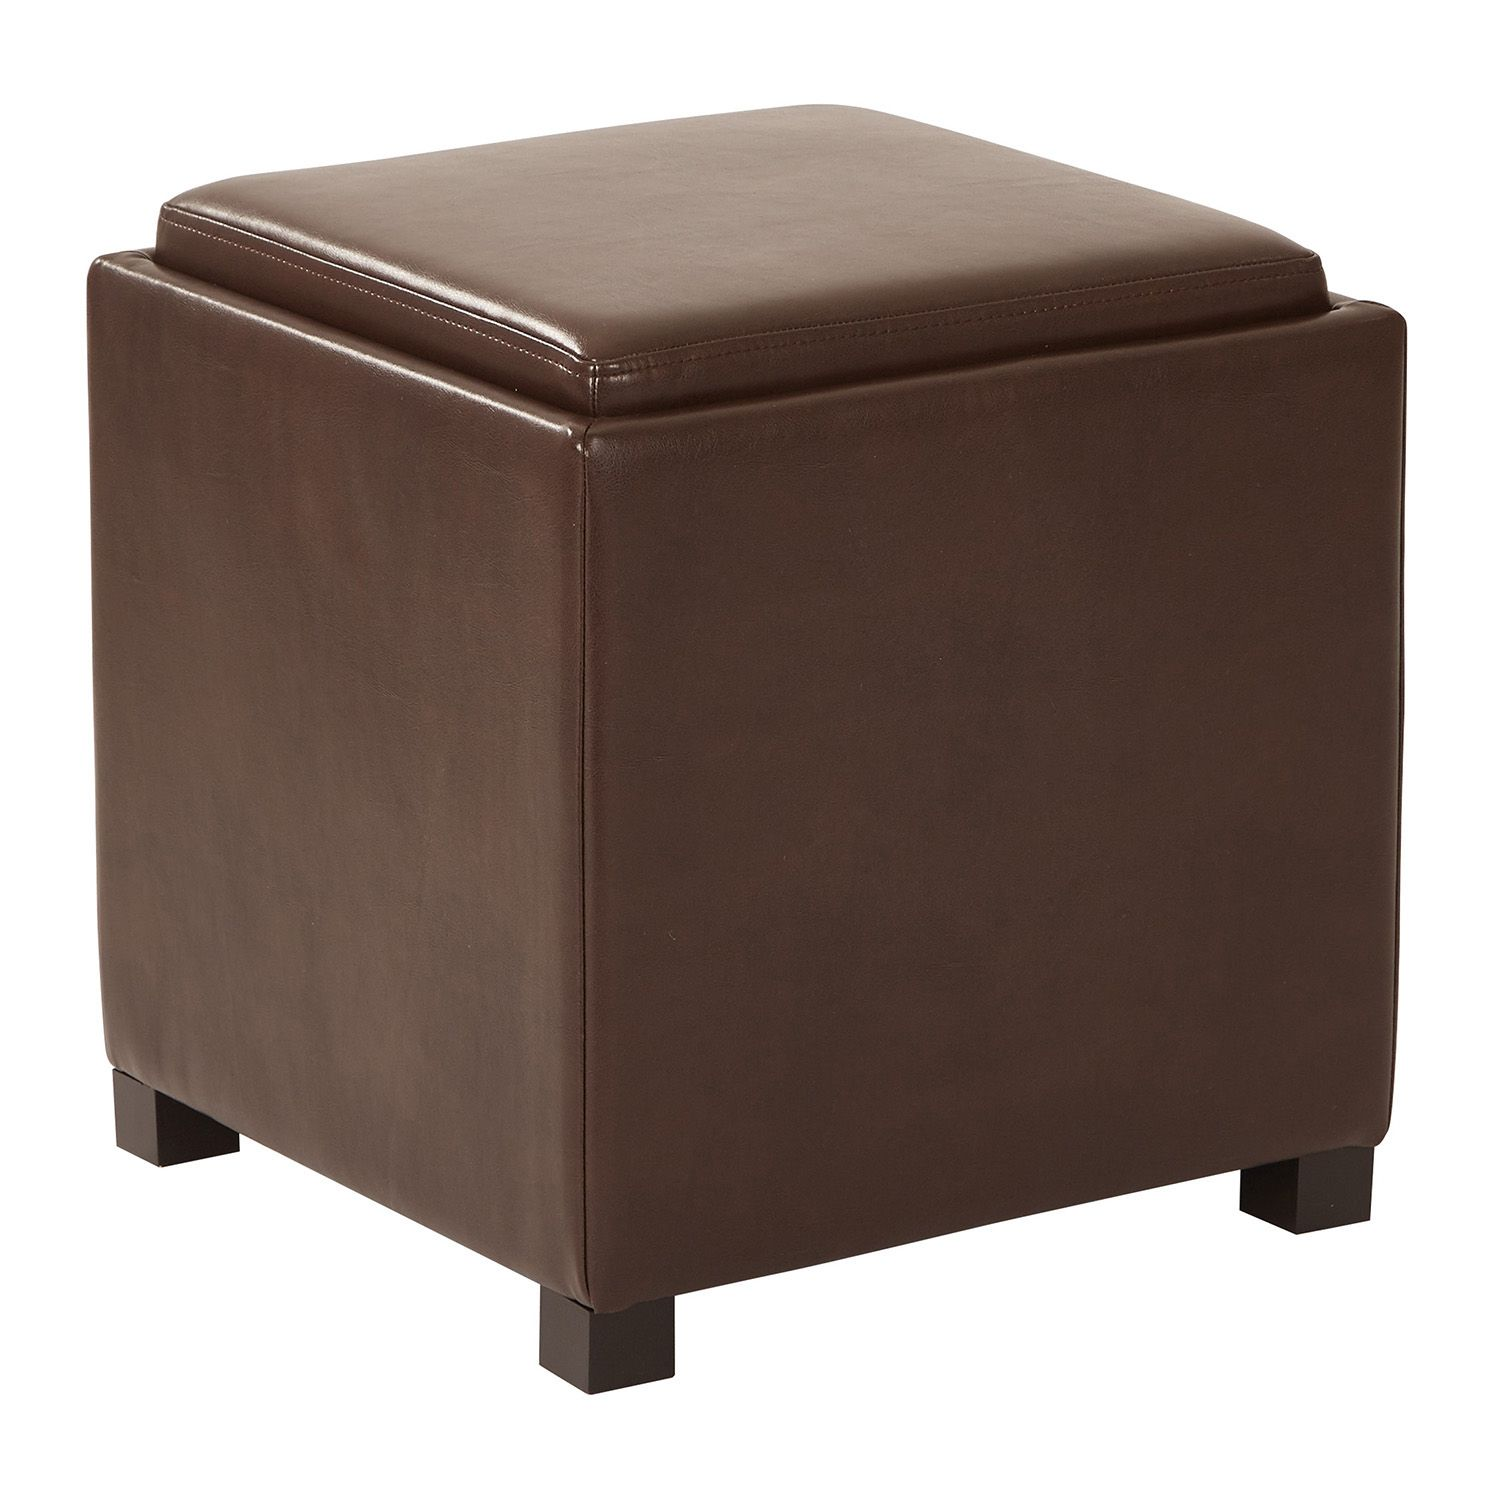 Charmant Carter Square Storage Ottoman